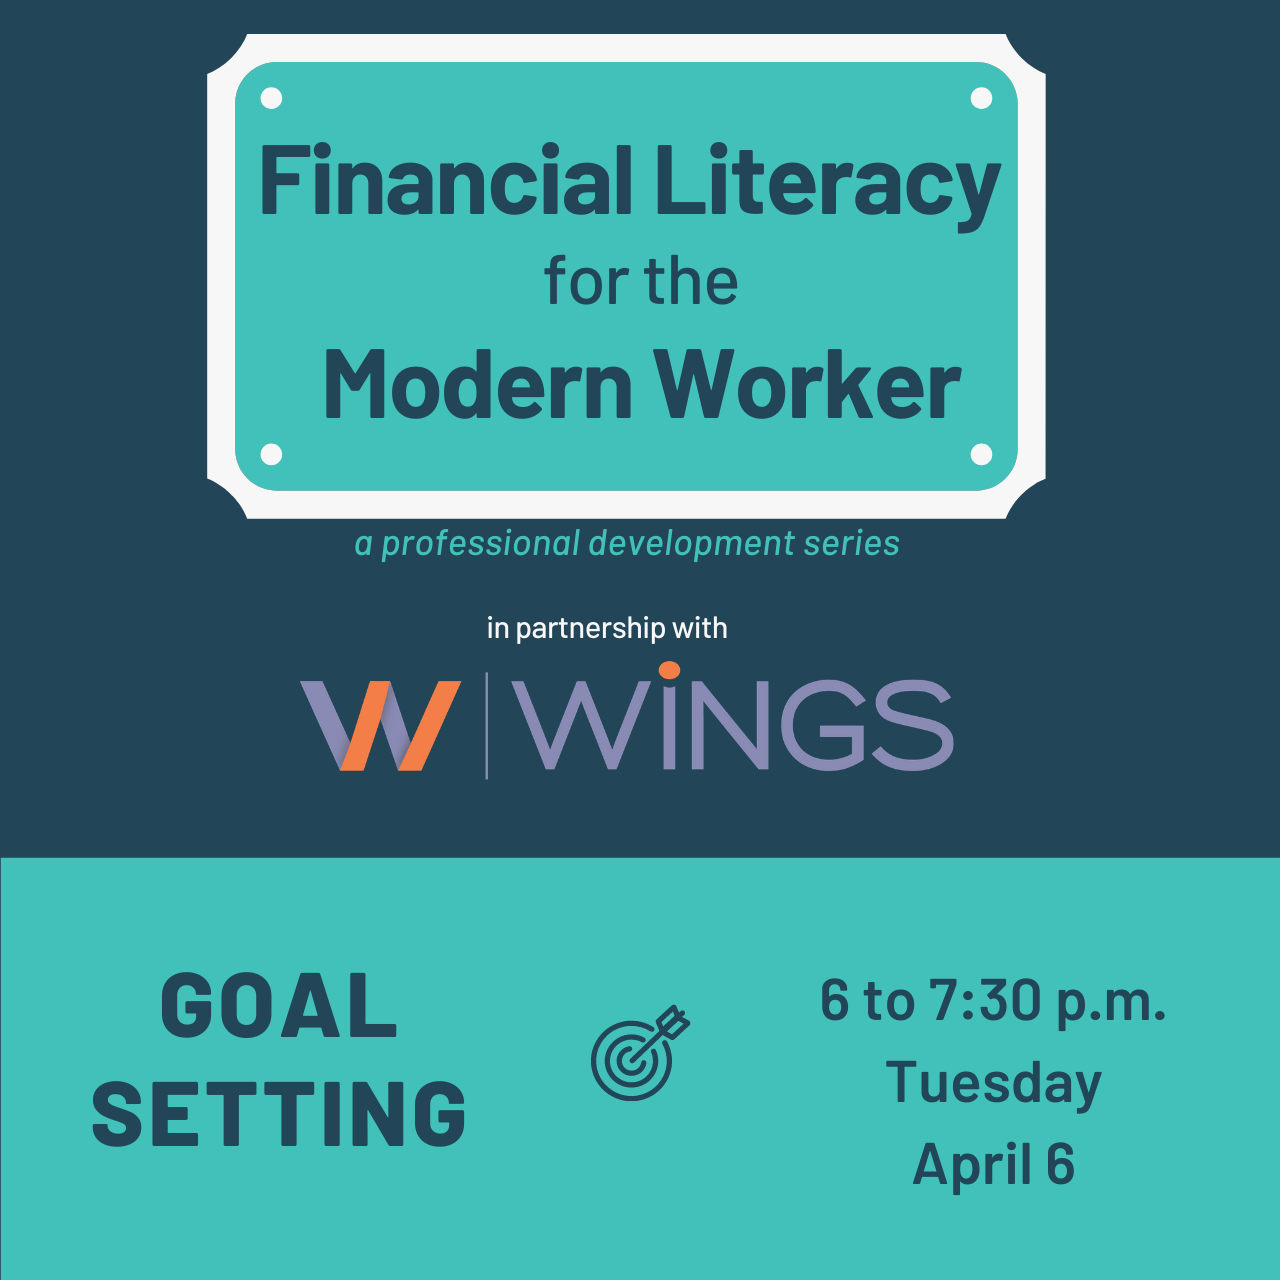 Financial Literacy for the Modern Worker: Goal Setting